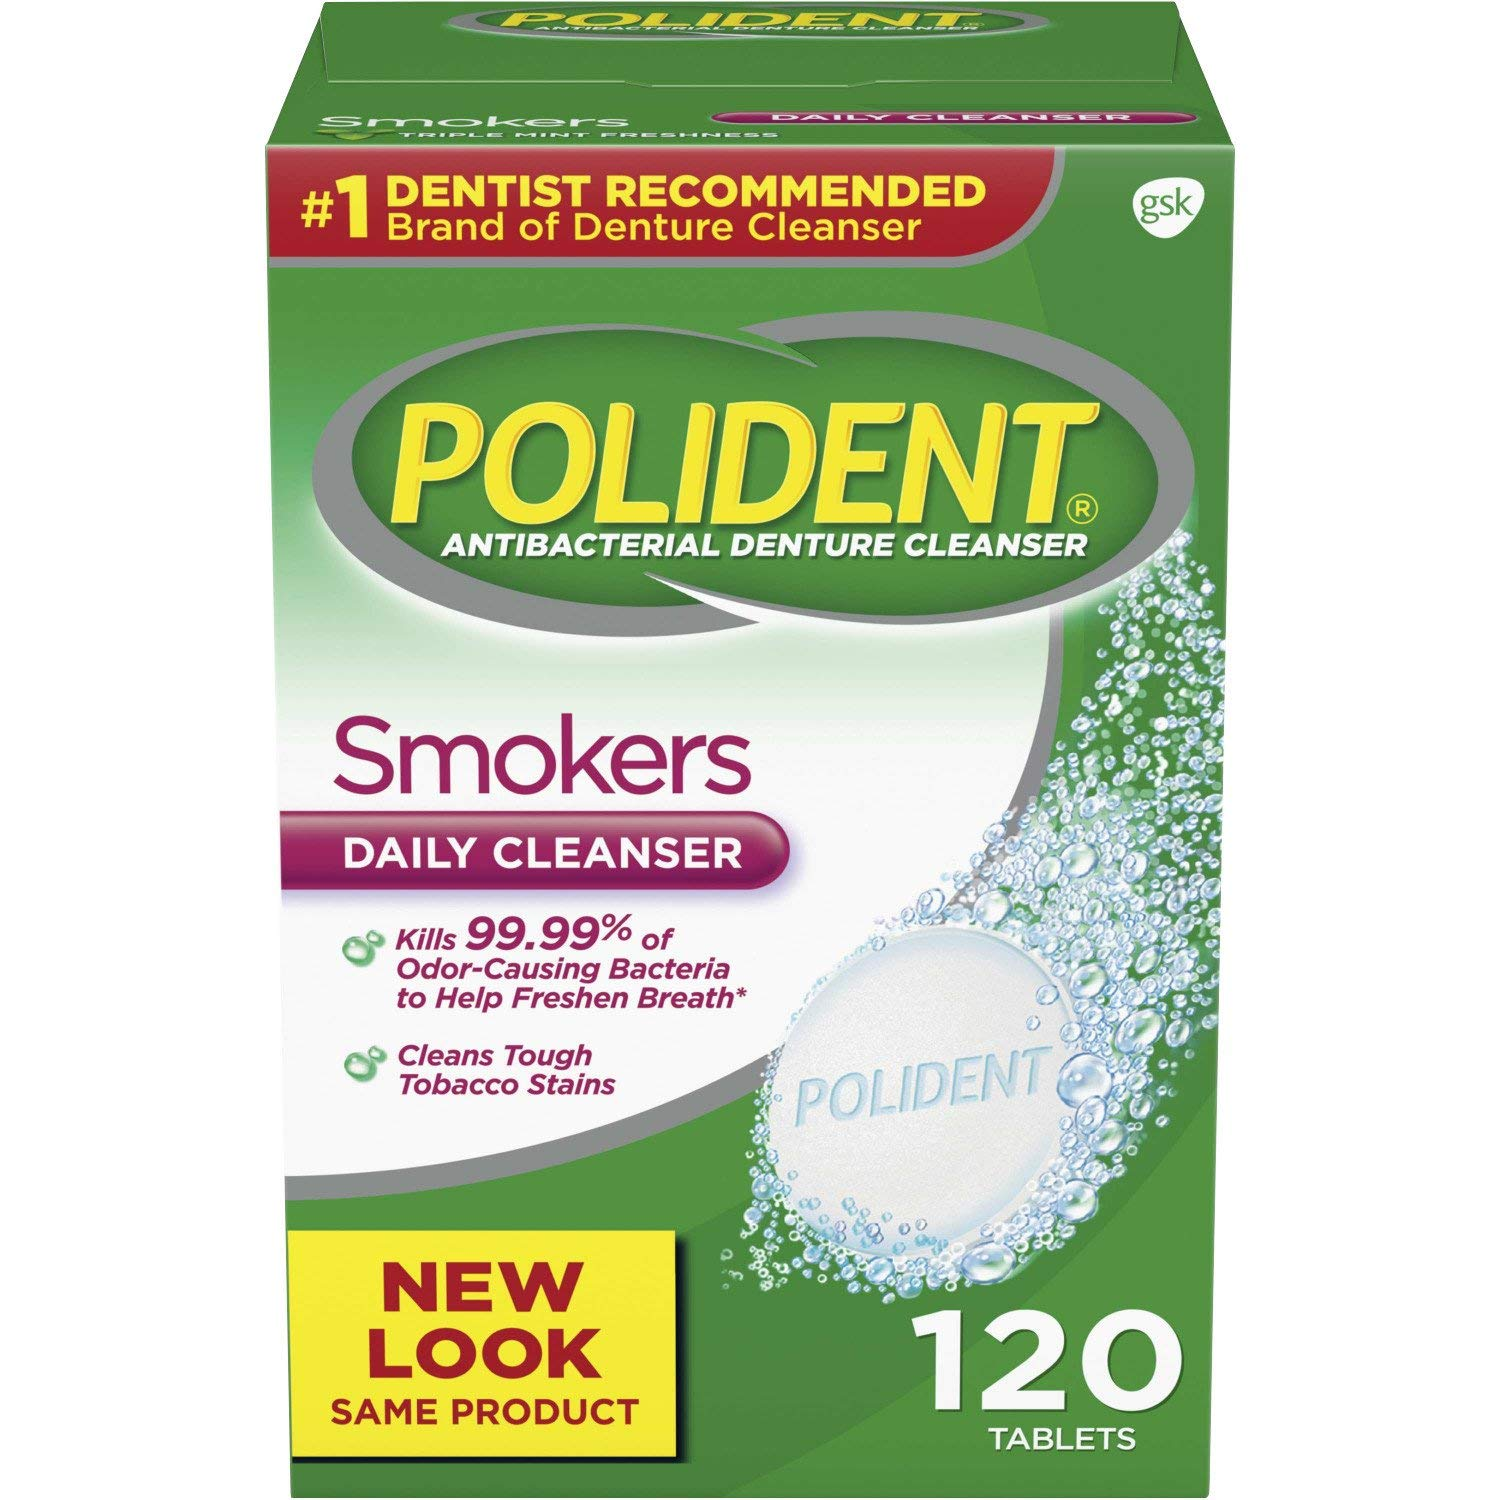 Polident Smokers Antibacterial Denture Cleanser Effervescent Tablets, 120 count: Beauty